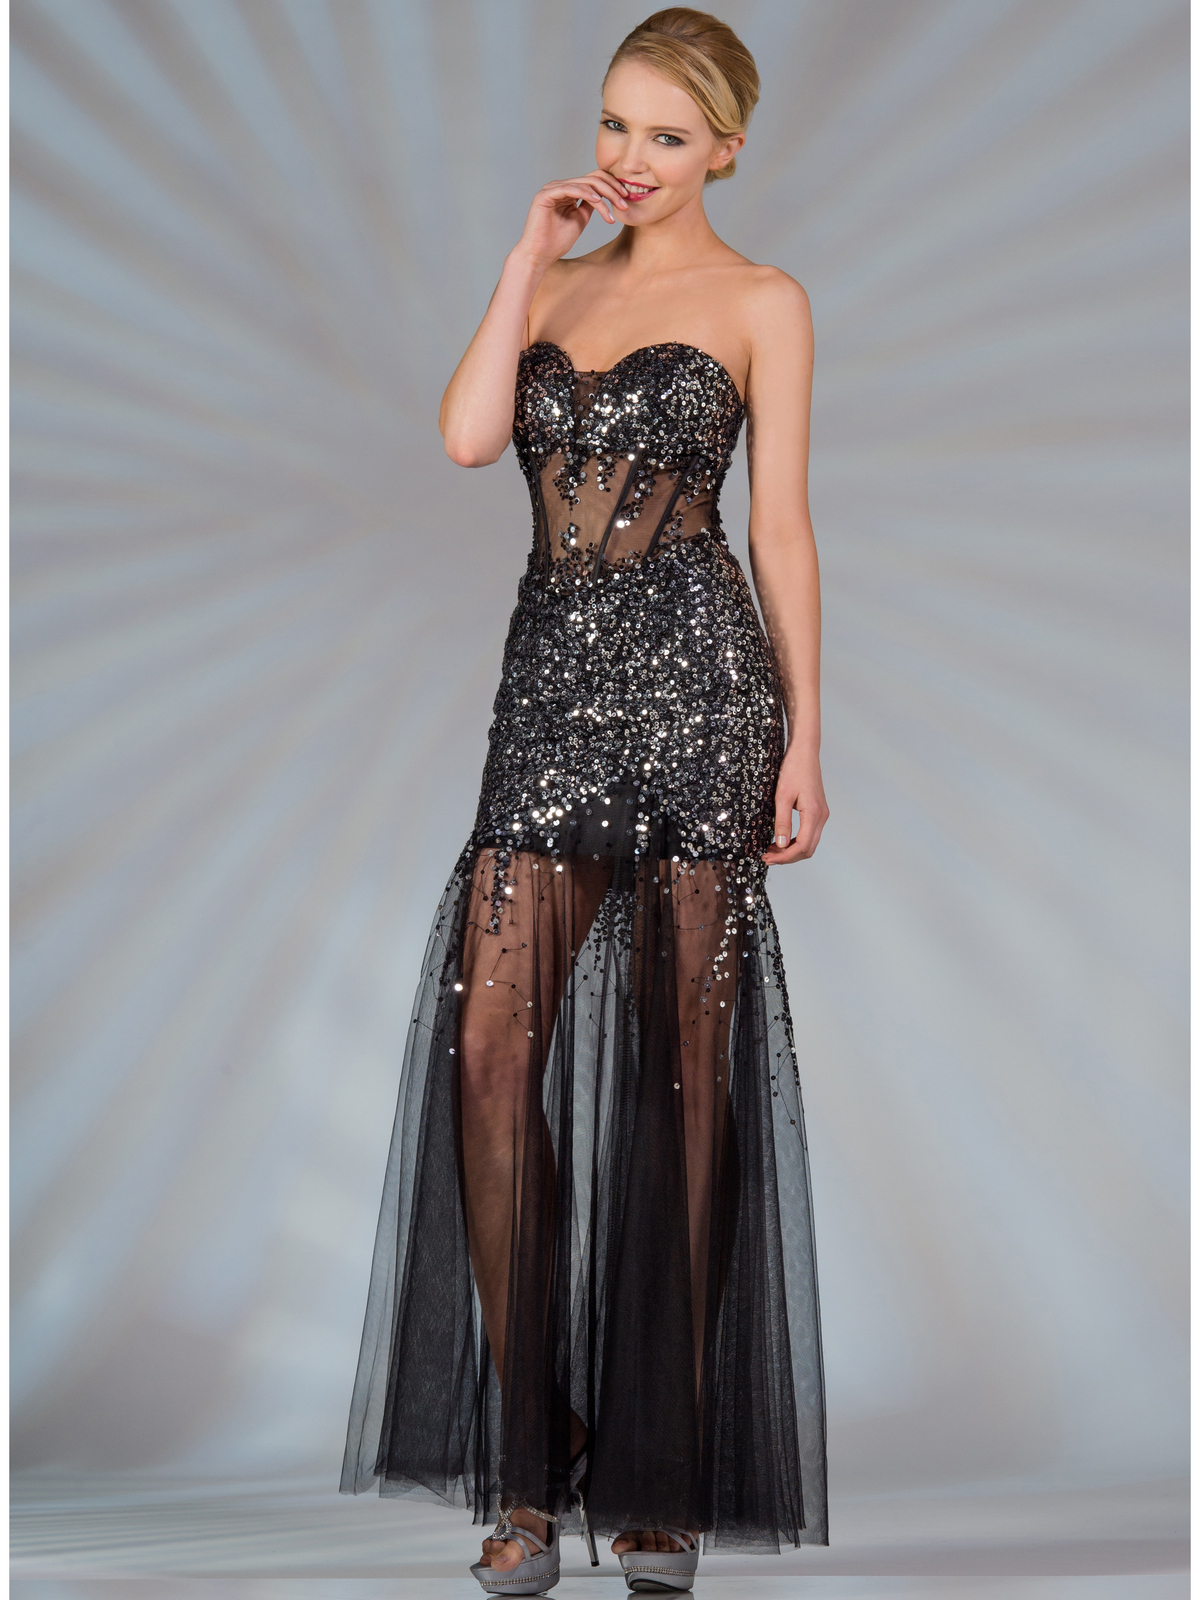 Sheer Sequined Corset Dress  Sung Boutique L.A.